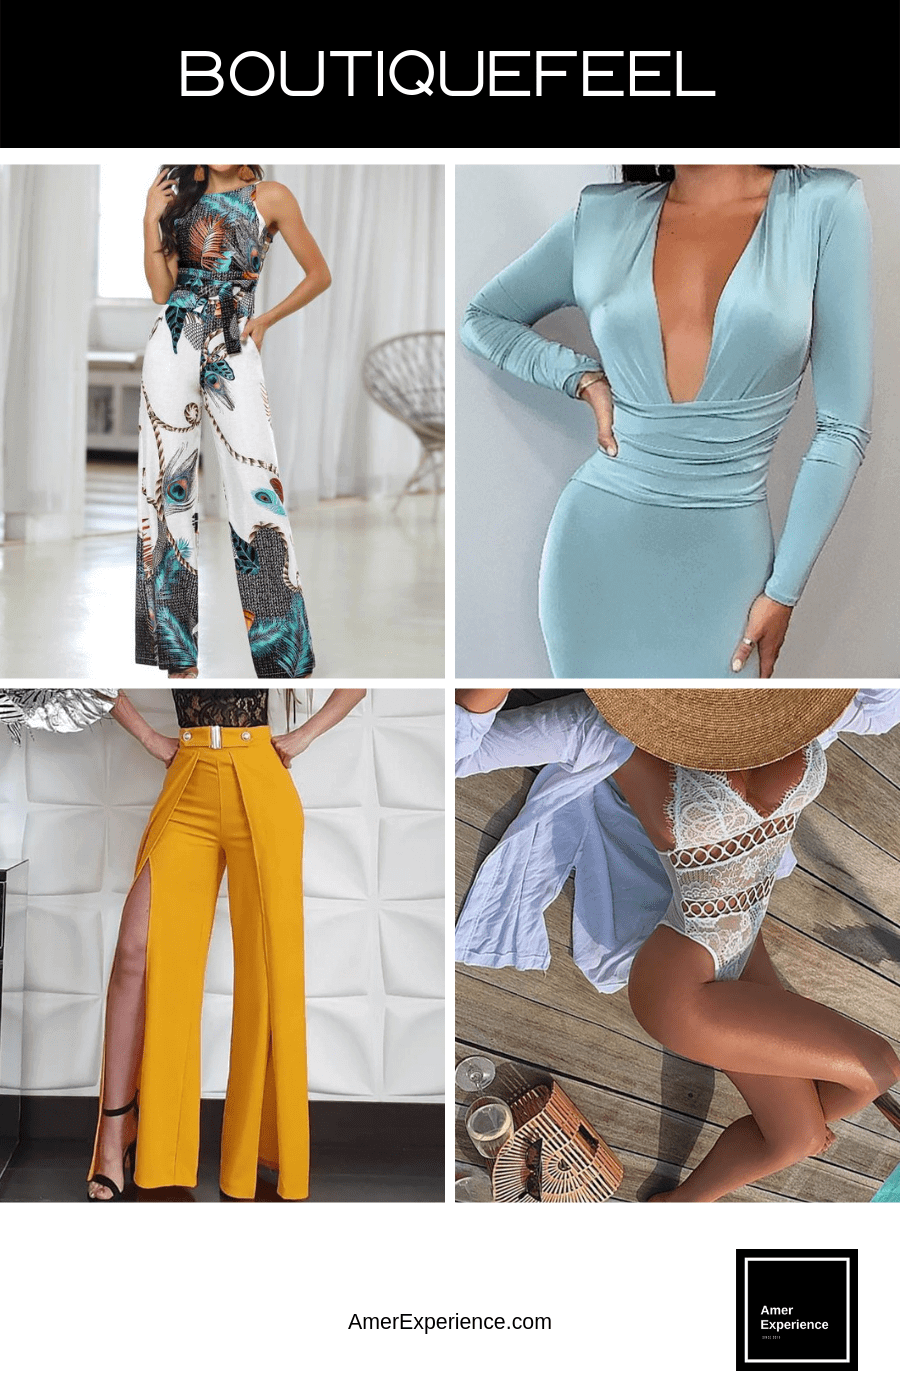 Boutiquefeel is a unique shopping website with a distinctive tone focusing on women's fashion. We offer high performance-price products including women's clothing, jewelry, beauty & health products, shoes, bags, and more. Our vision is bringing happiness into every woman's life. TOP FASHION ONLINE STORES